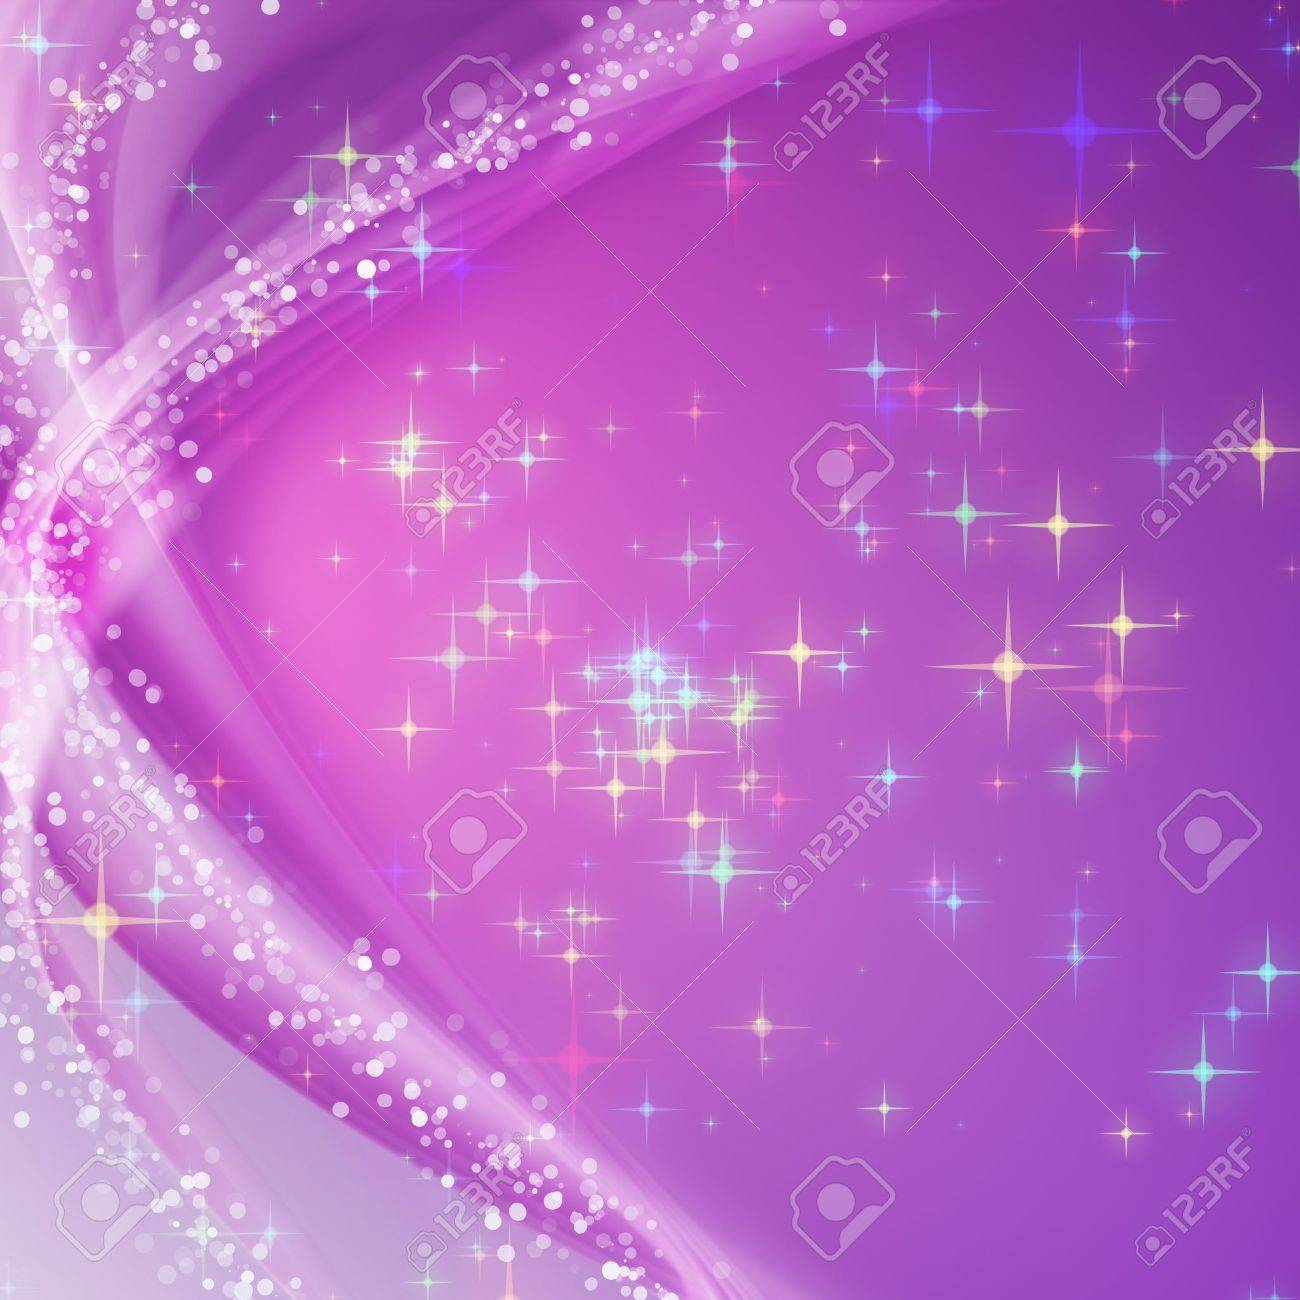 Fantastic Christmas wave design with snowflakes and glowing stars Stock Photo - 16585279